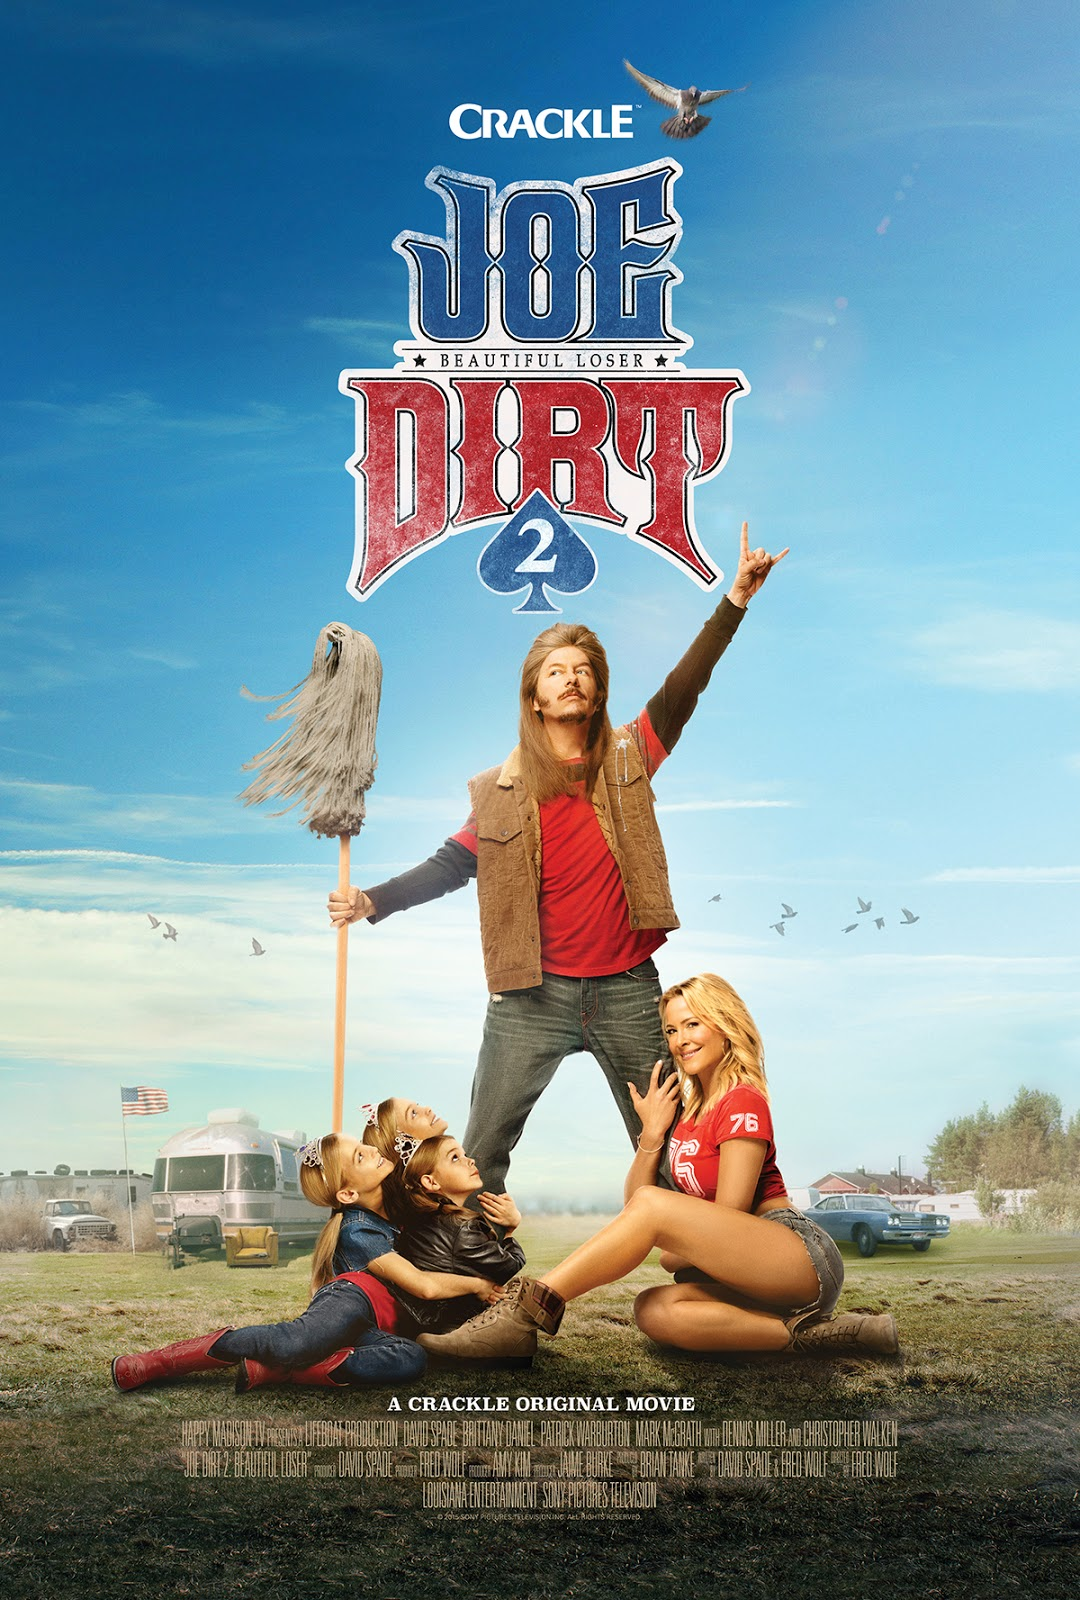 Joedirt2 Sneak Peek Clips Sandwichjohnfilms Catriona Maika Top Handle Bag Pink In This Sequel To The 2001 Cult Favorite David Spade Rules Of Engagement Returns As Mullet Wearing Rock And Roll Loving Down On His Luck